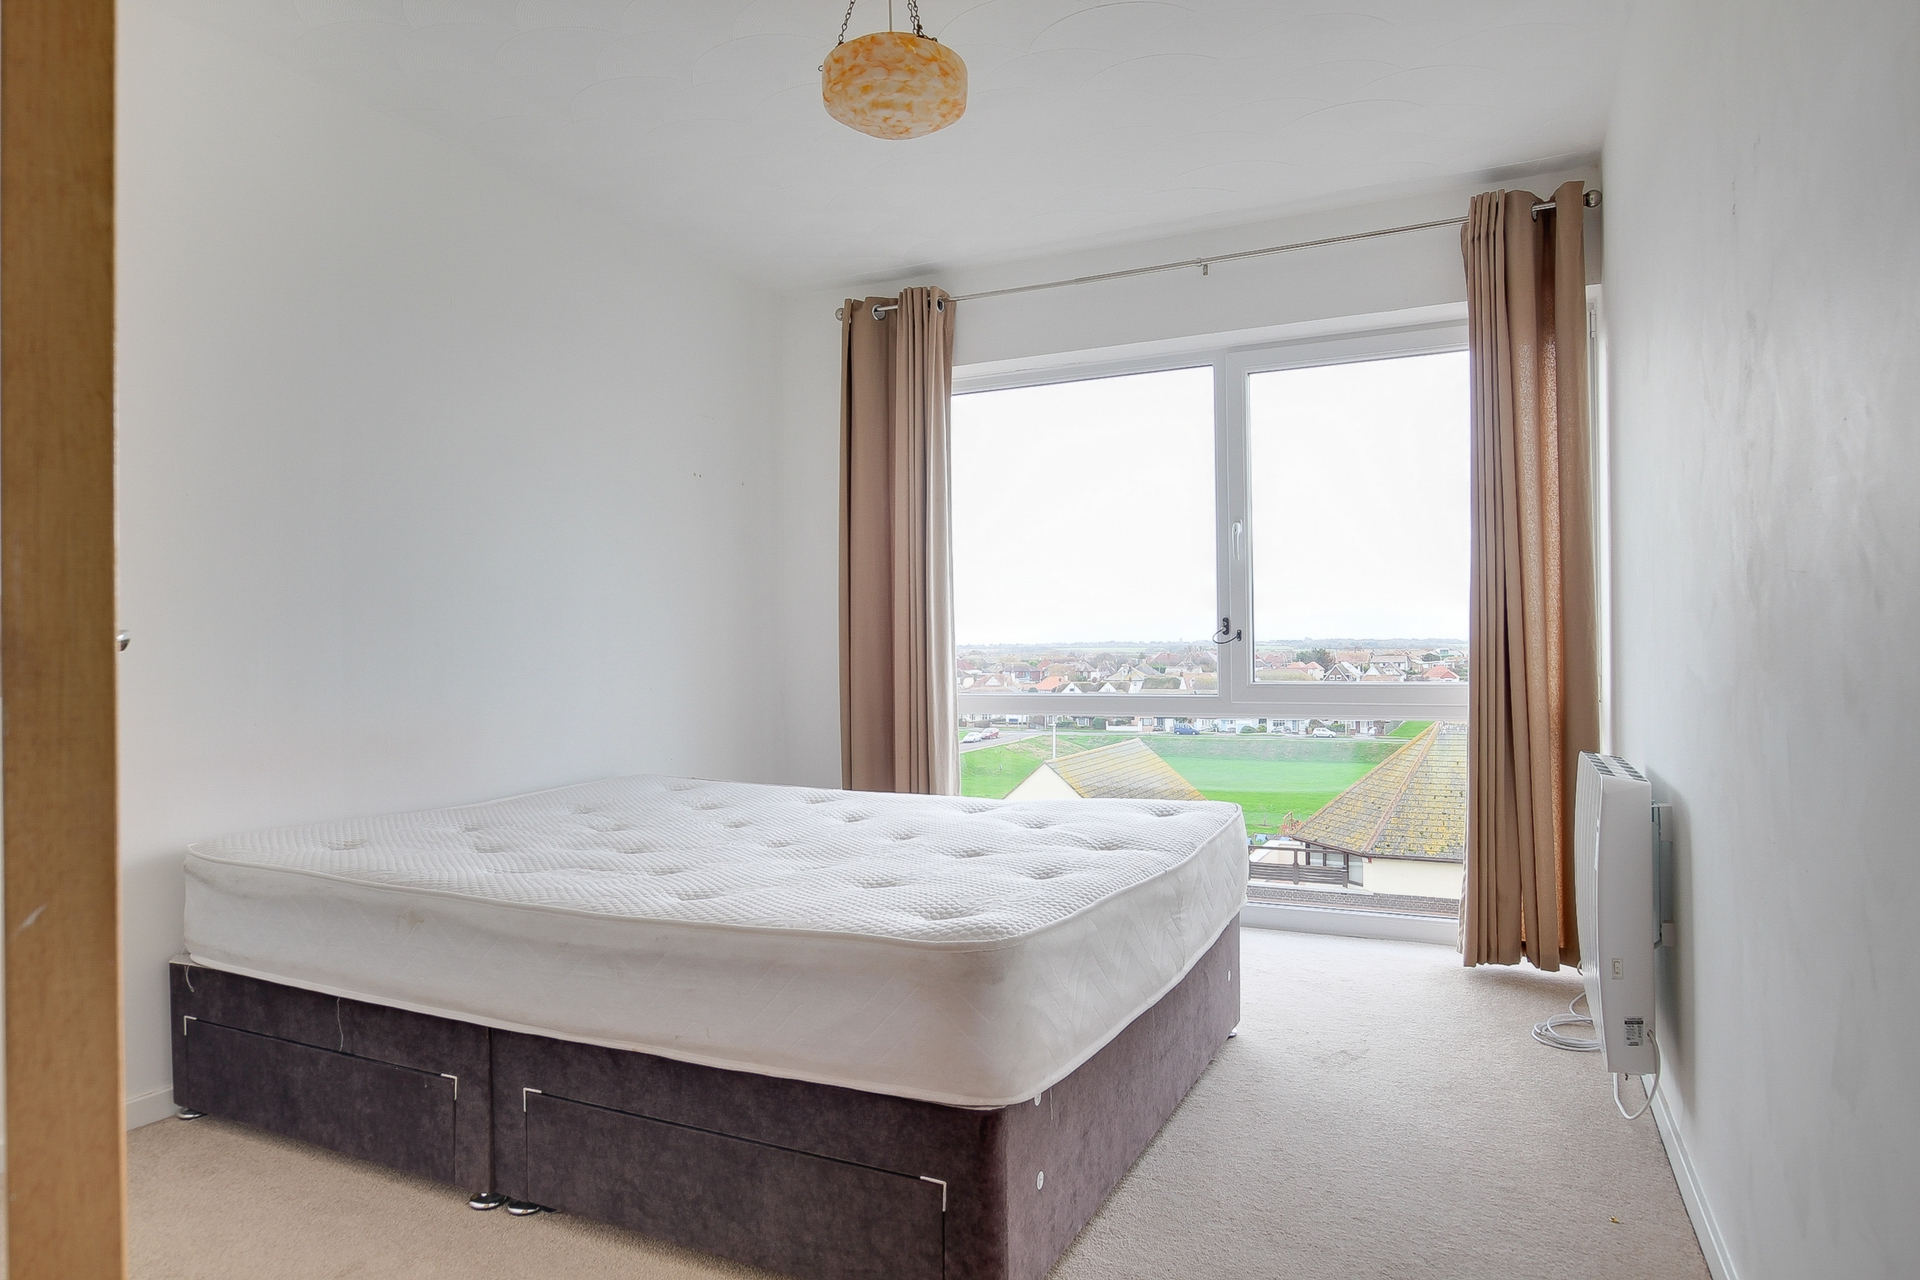 2 bed apartment to rent in The Parade, Birchington, CT7 5